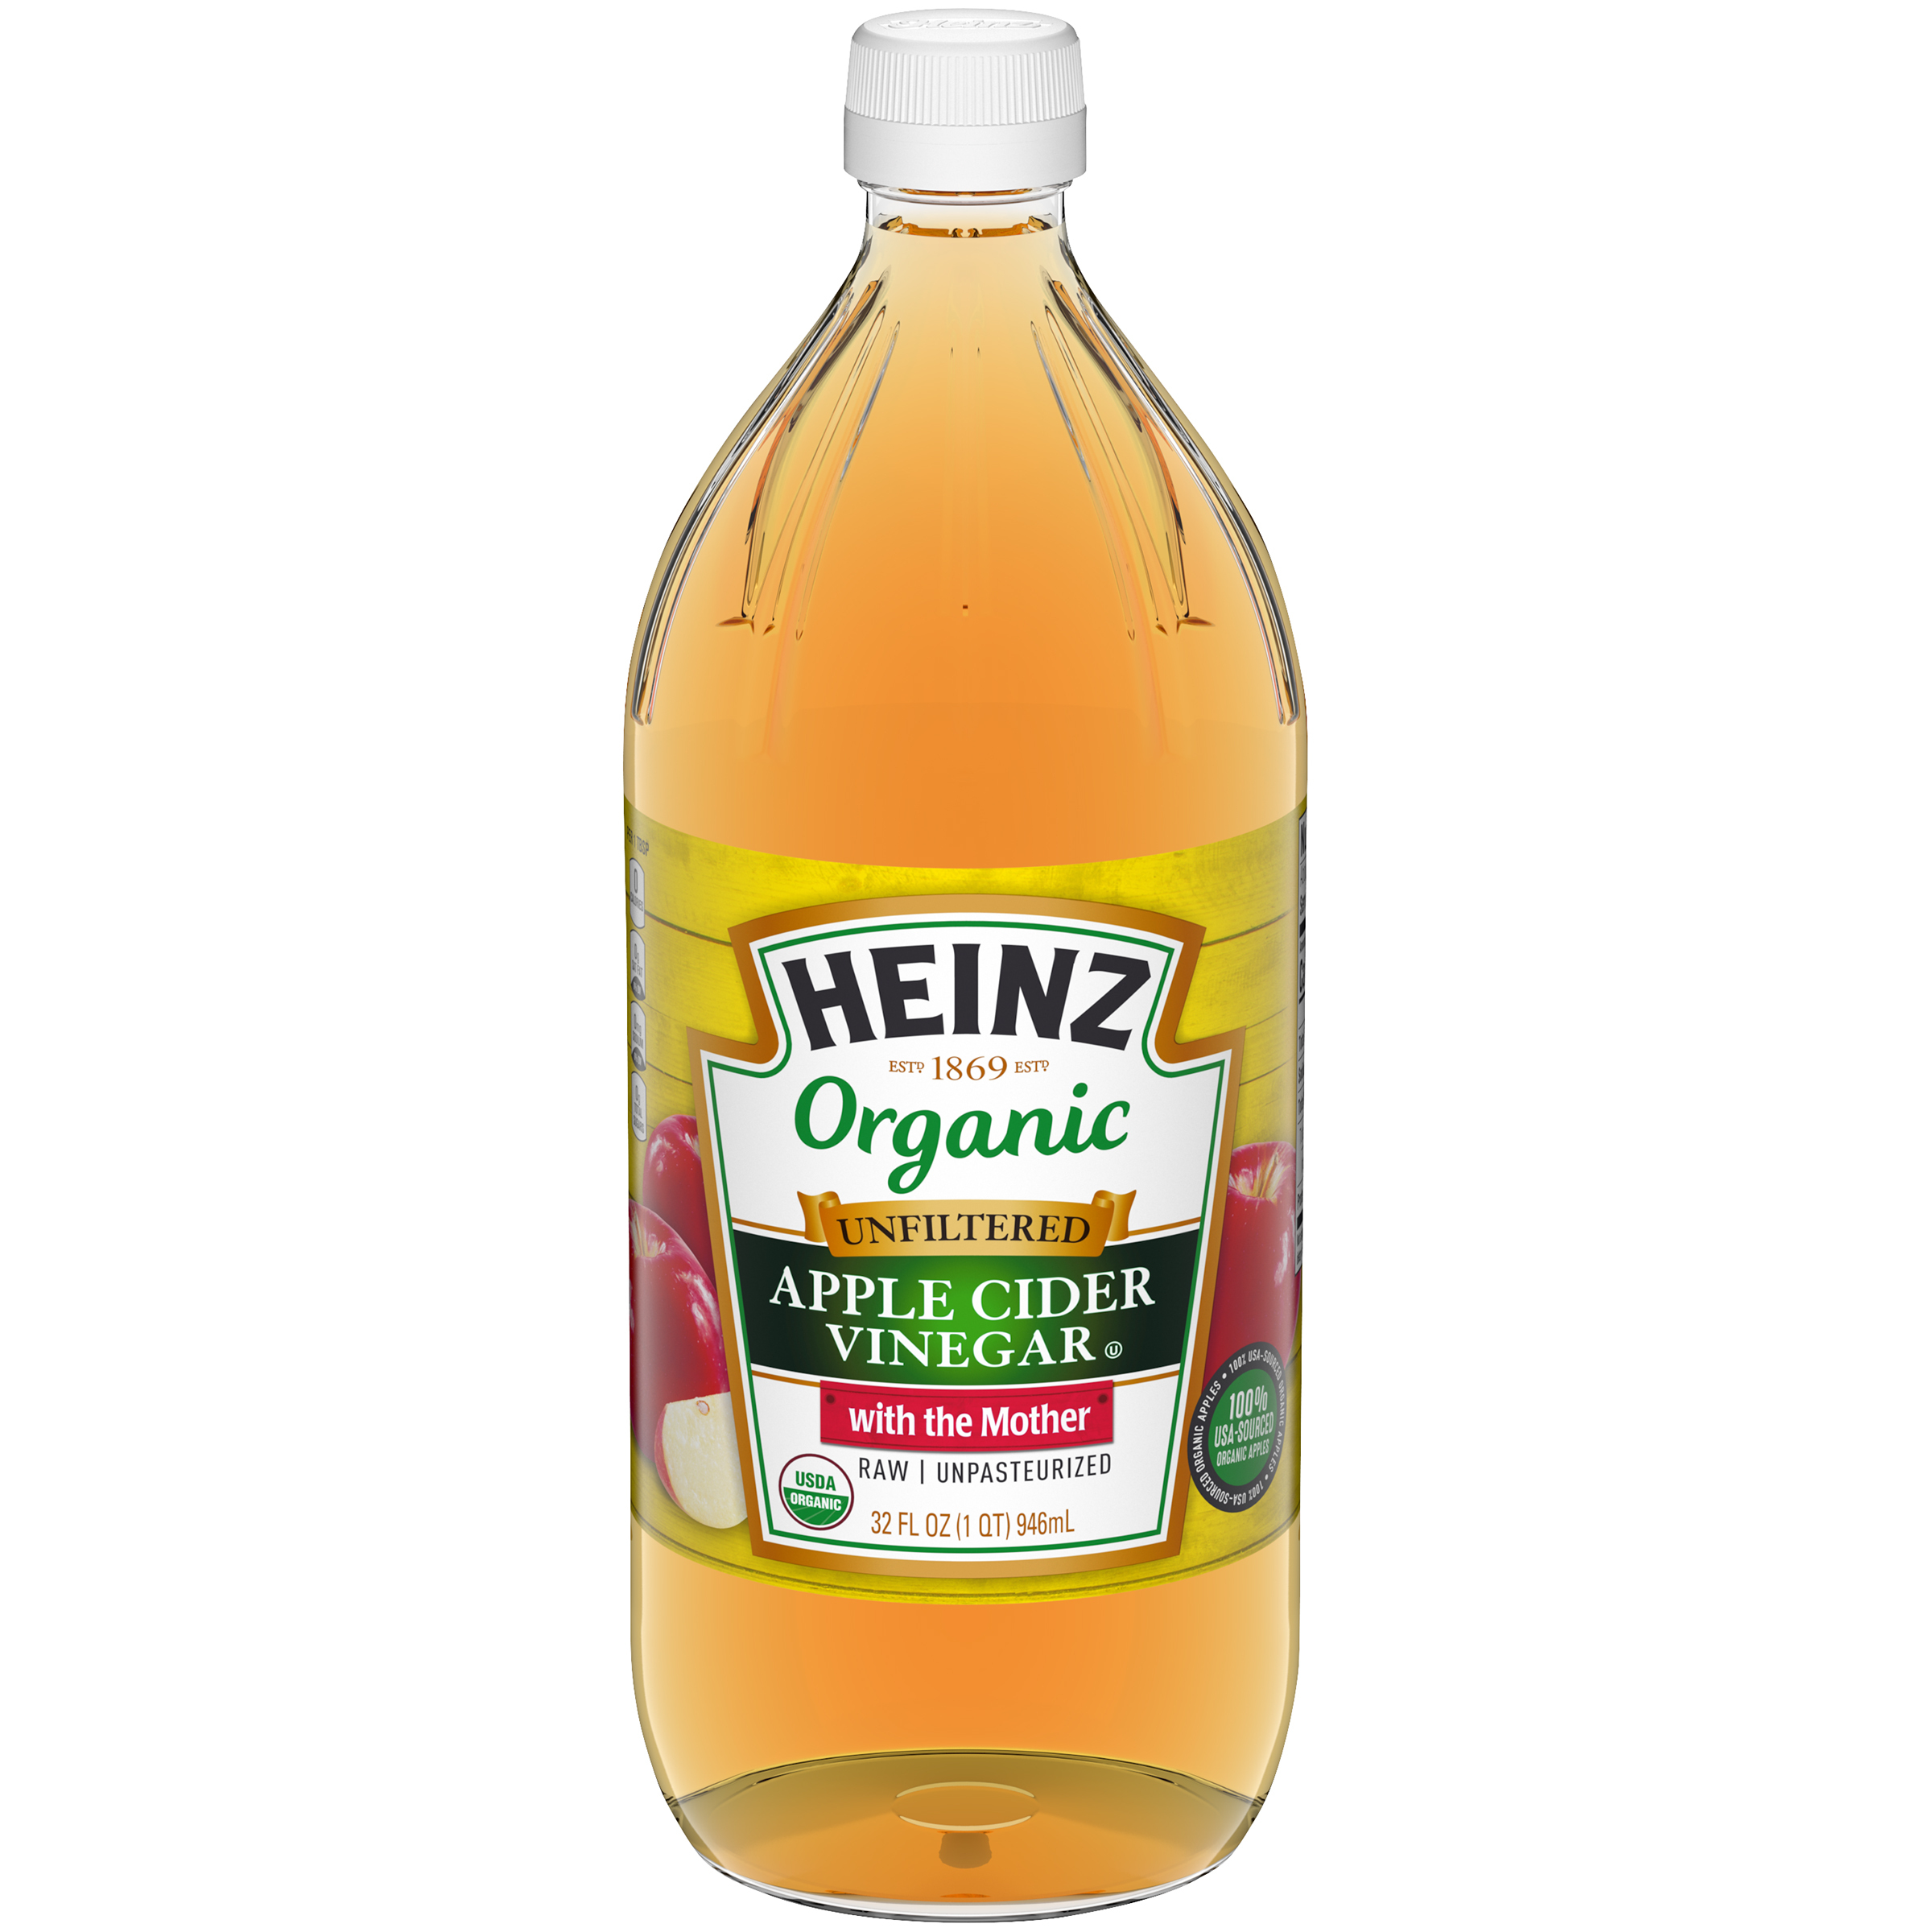 Heinz Organic Unfiltered Raw/Unpasteurized Apple Cider Vinegar 32 fl oz Bottle image